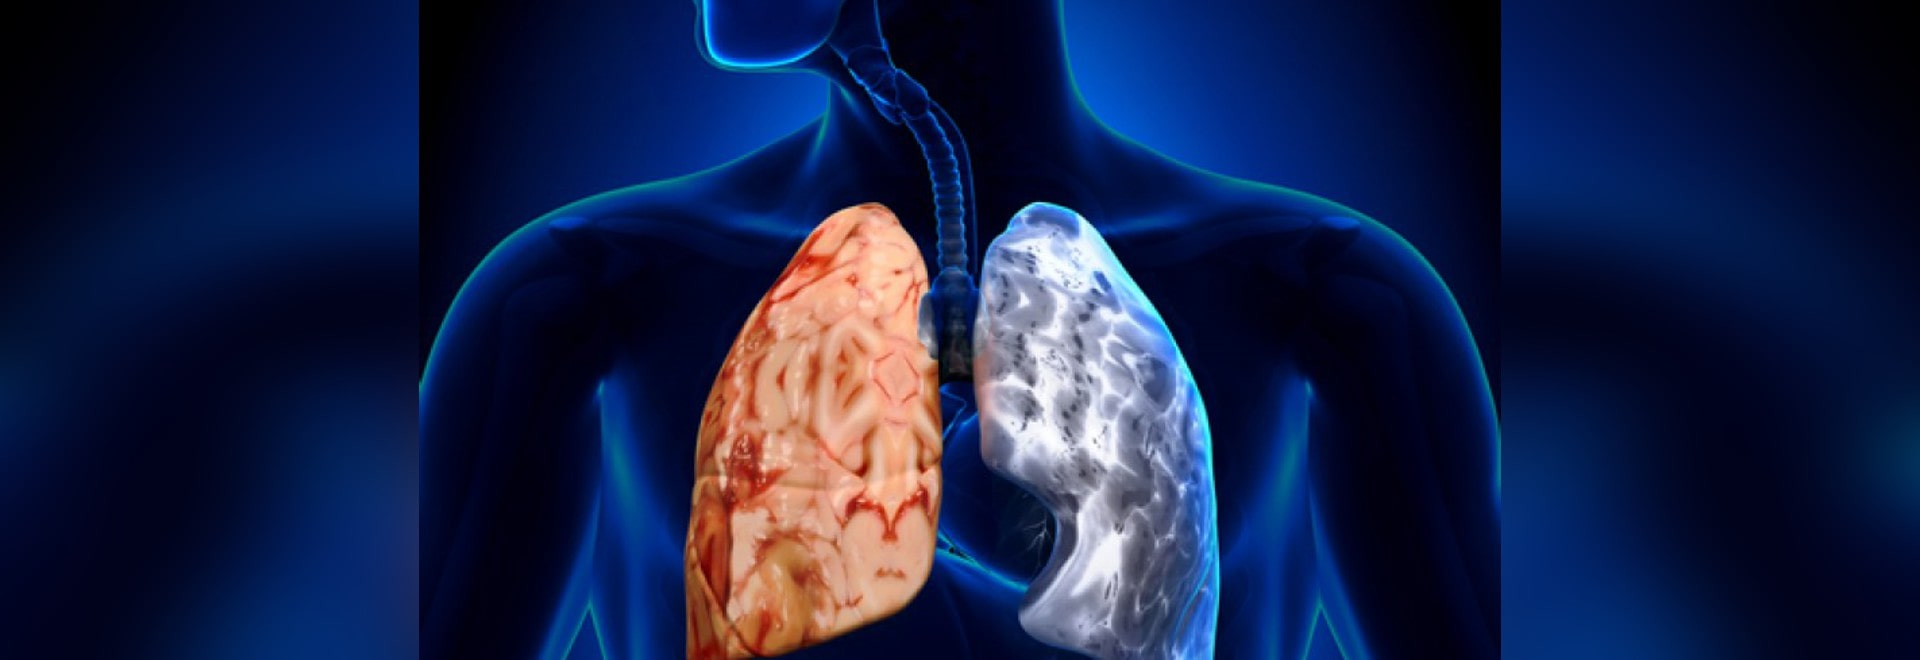 Care for COPD patients has improved but is still not good enough